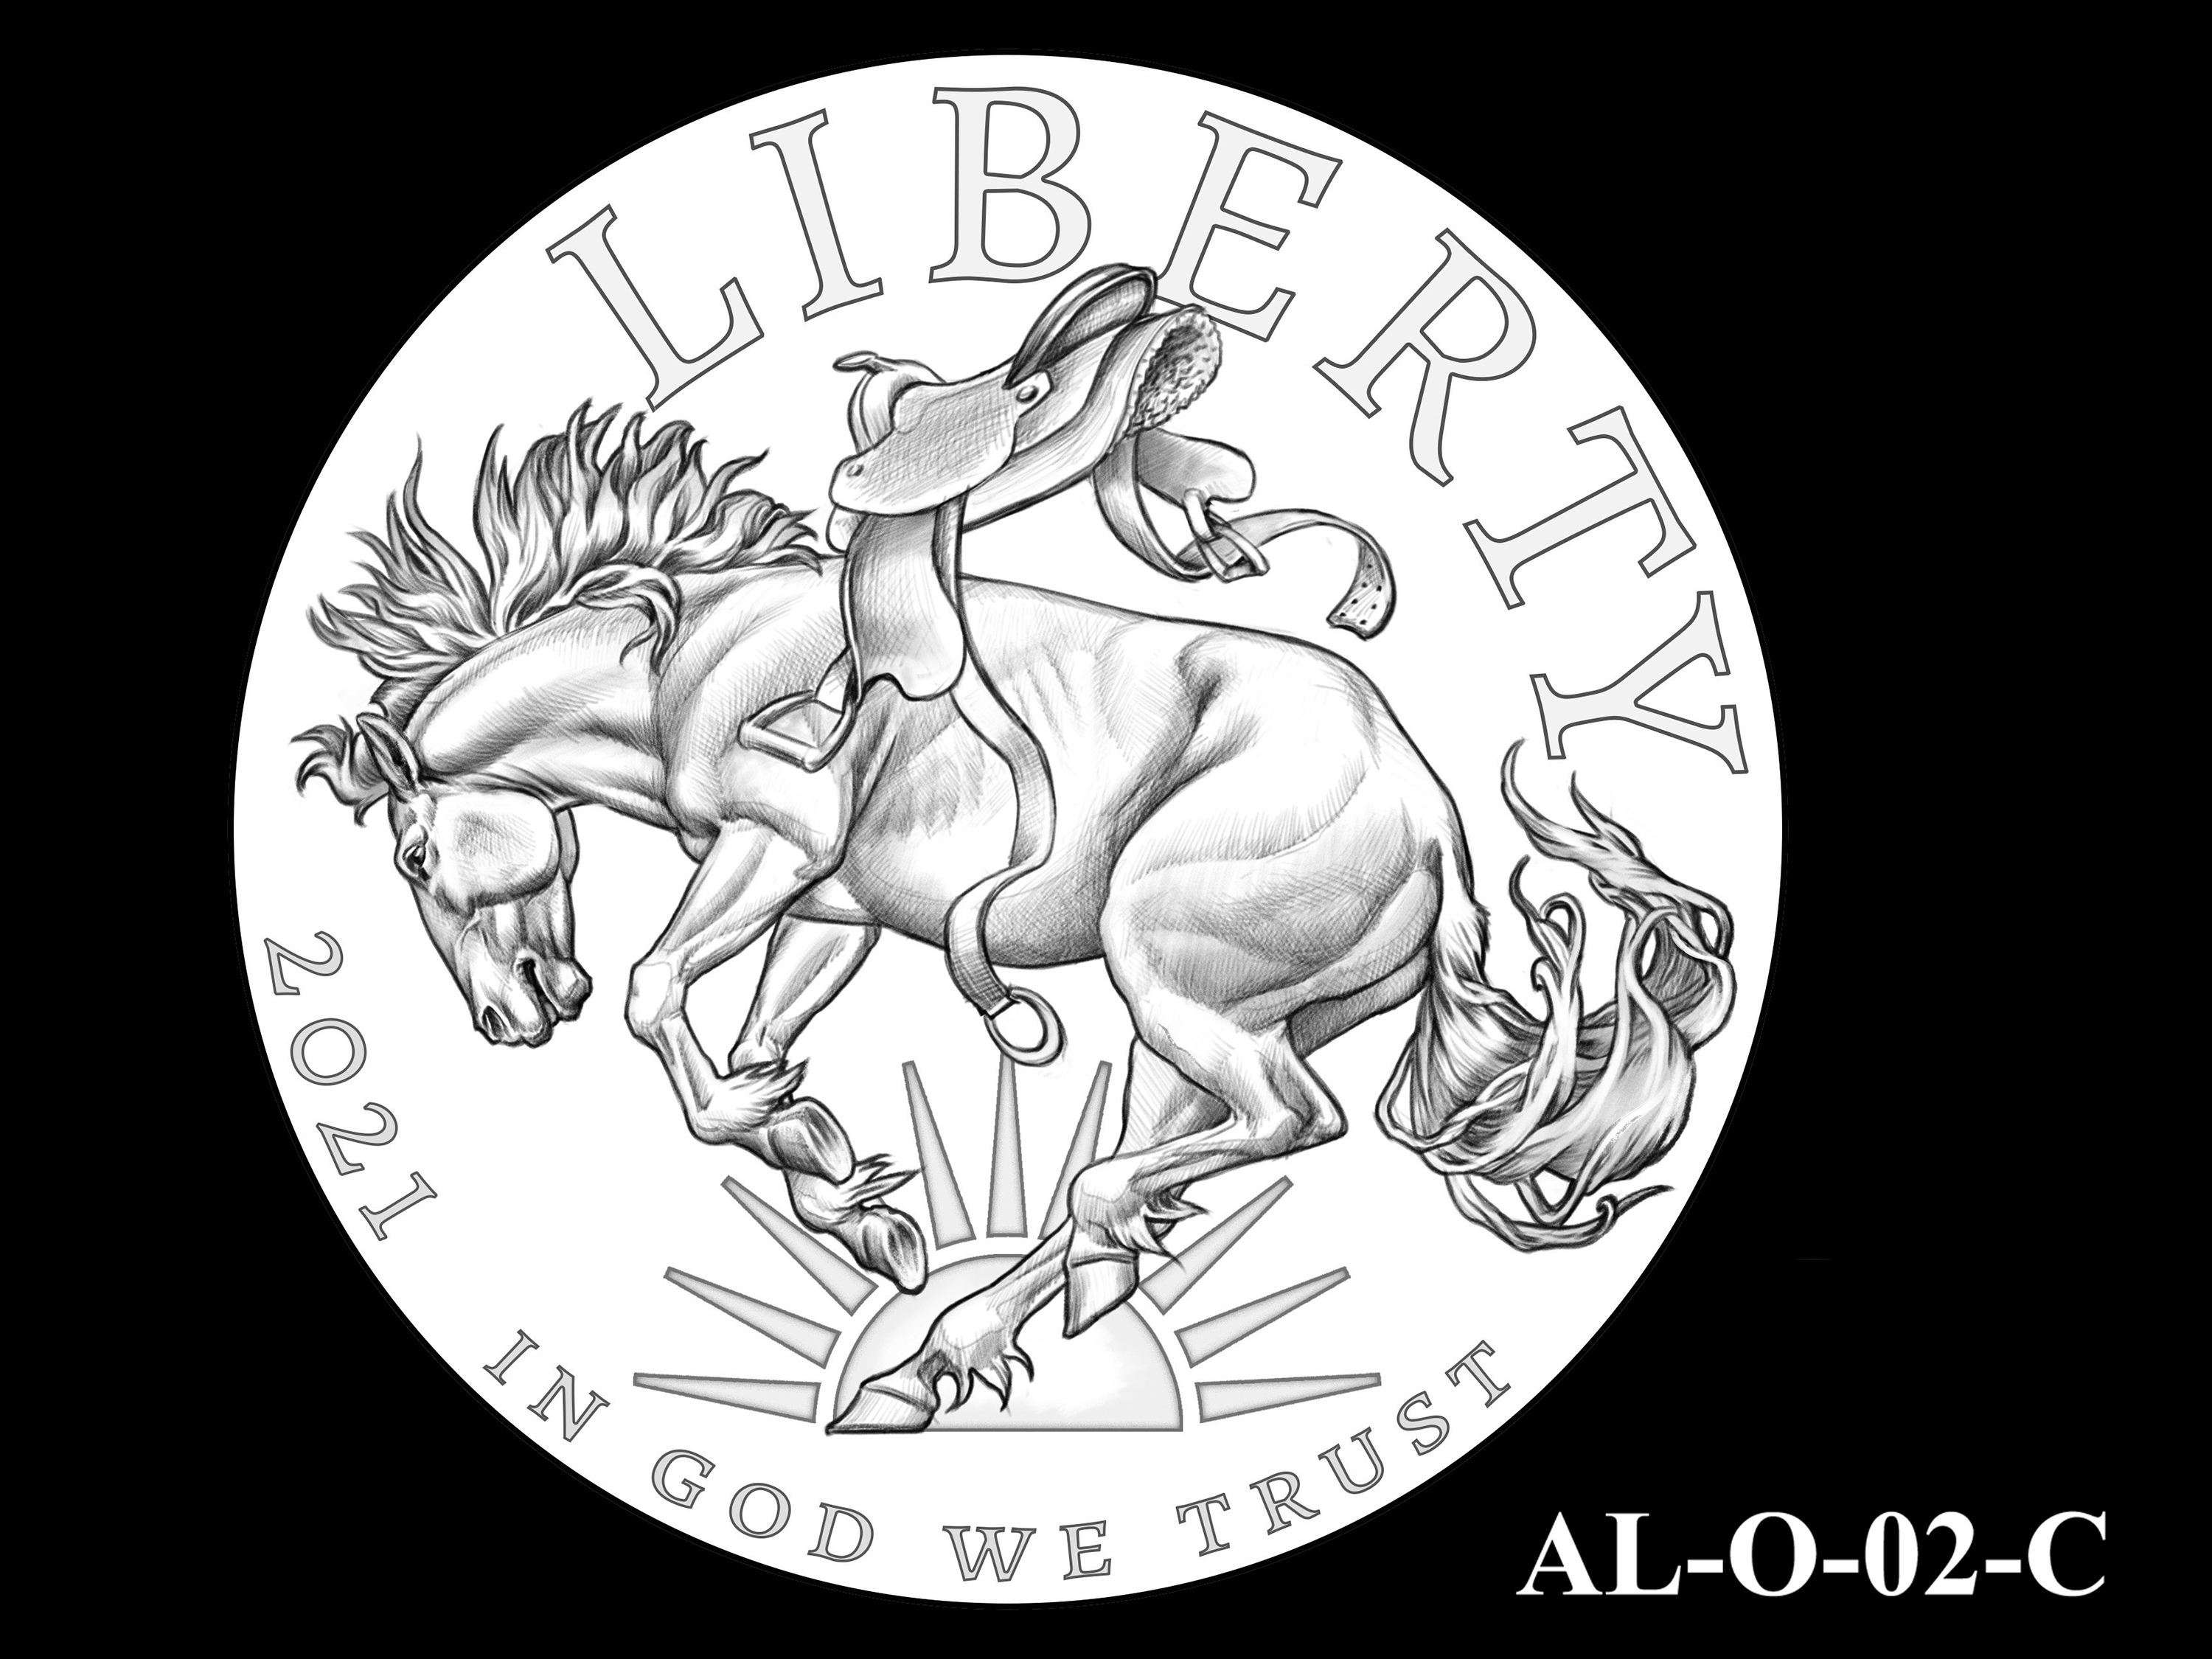 AL-O-02-C -- 2021 American Liberty Gold Coin and Silver Medal Program - Obverse